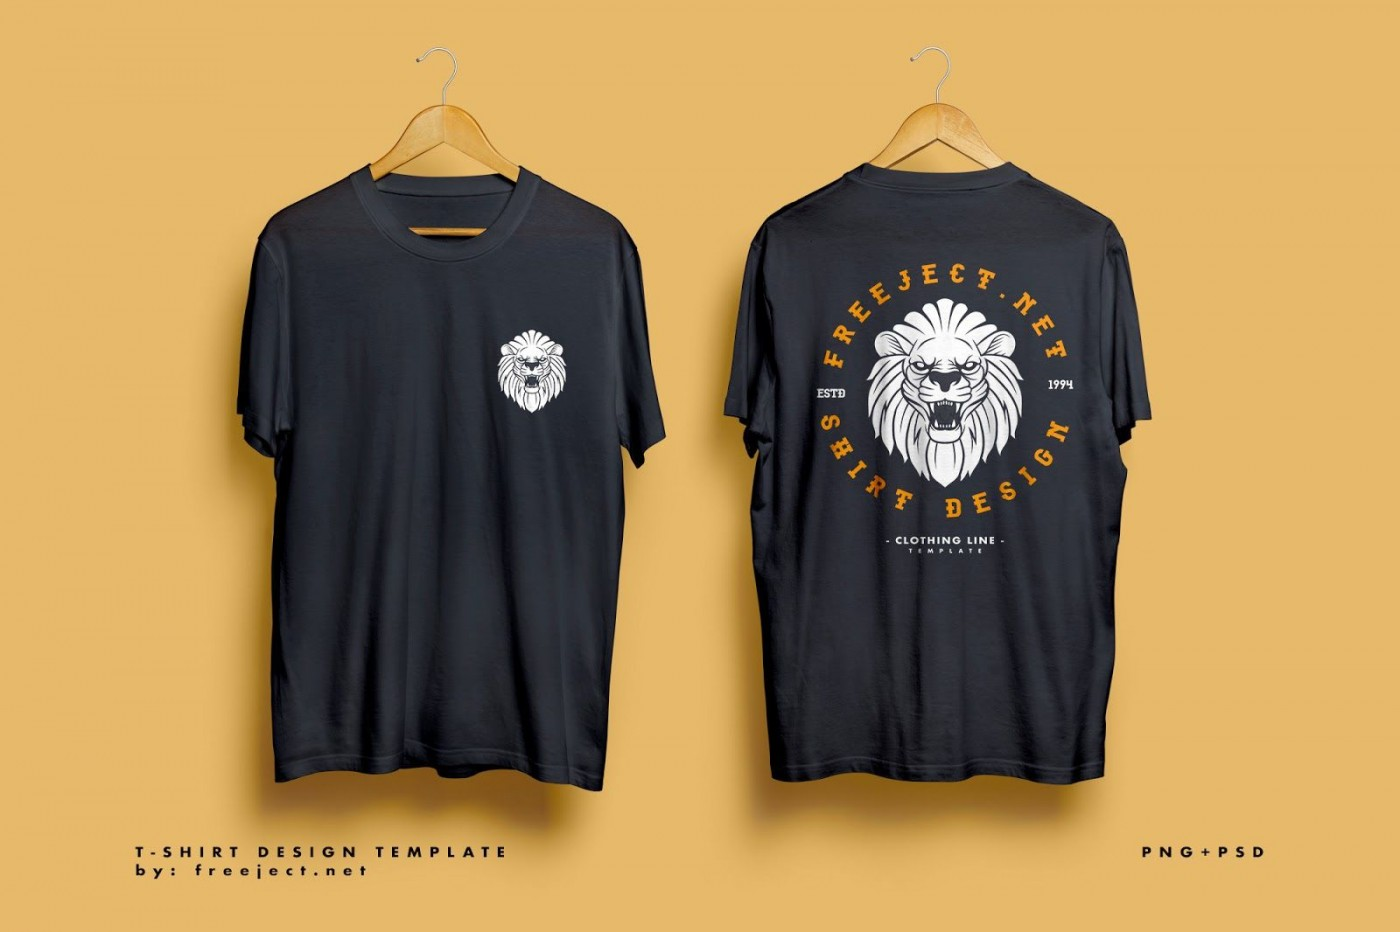 000 Staggering T Shirt Design Template Psd  Blank T-shirt Free Download Layout Photoshop1400